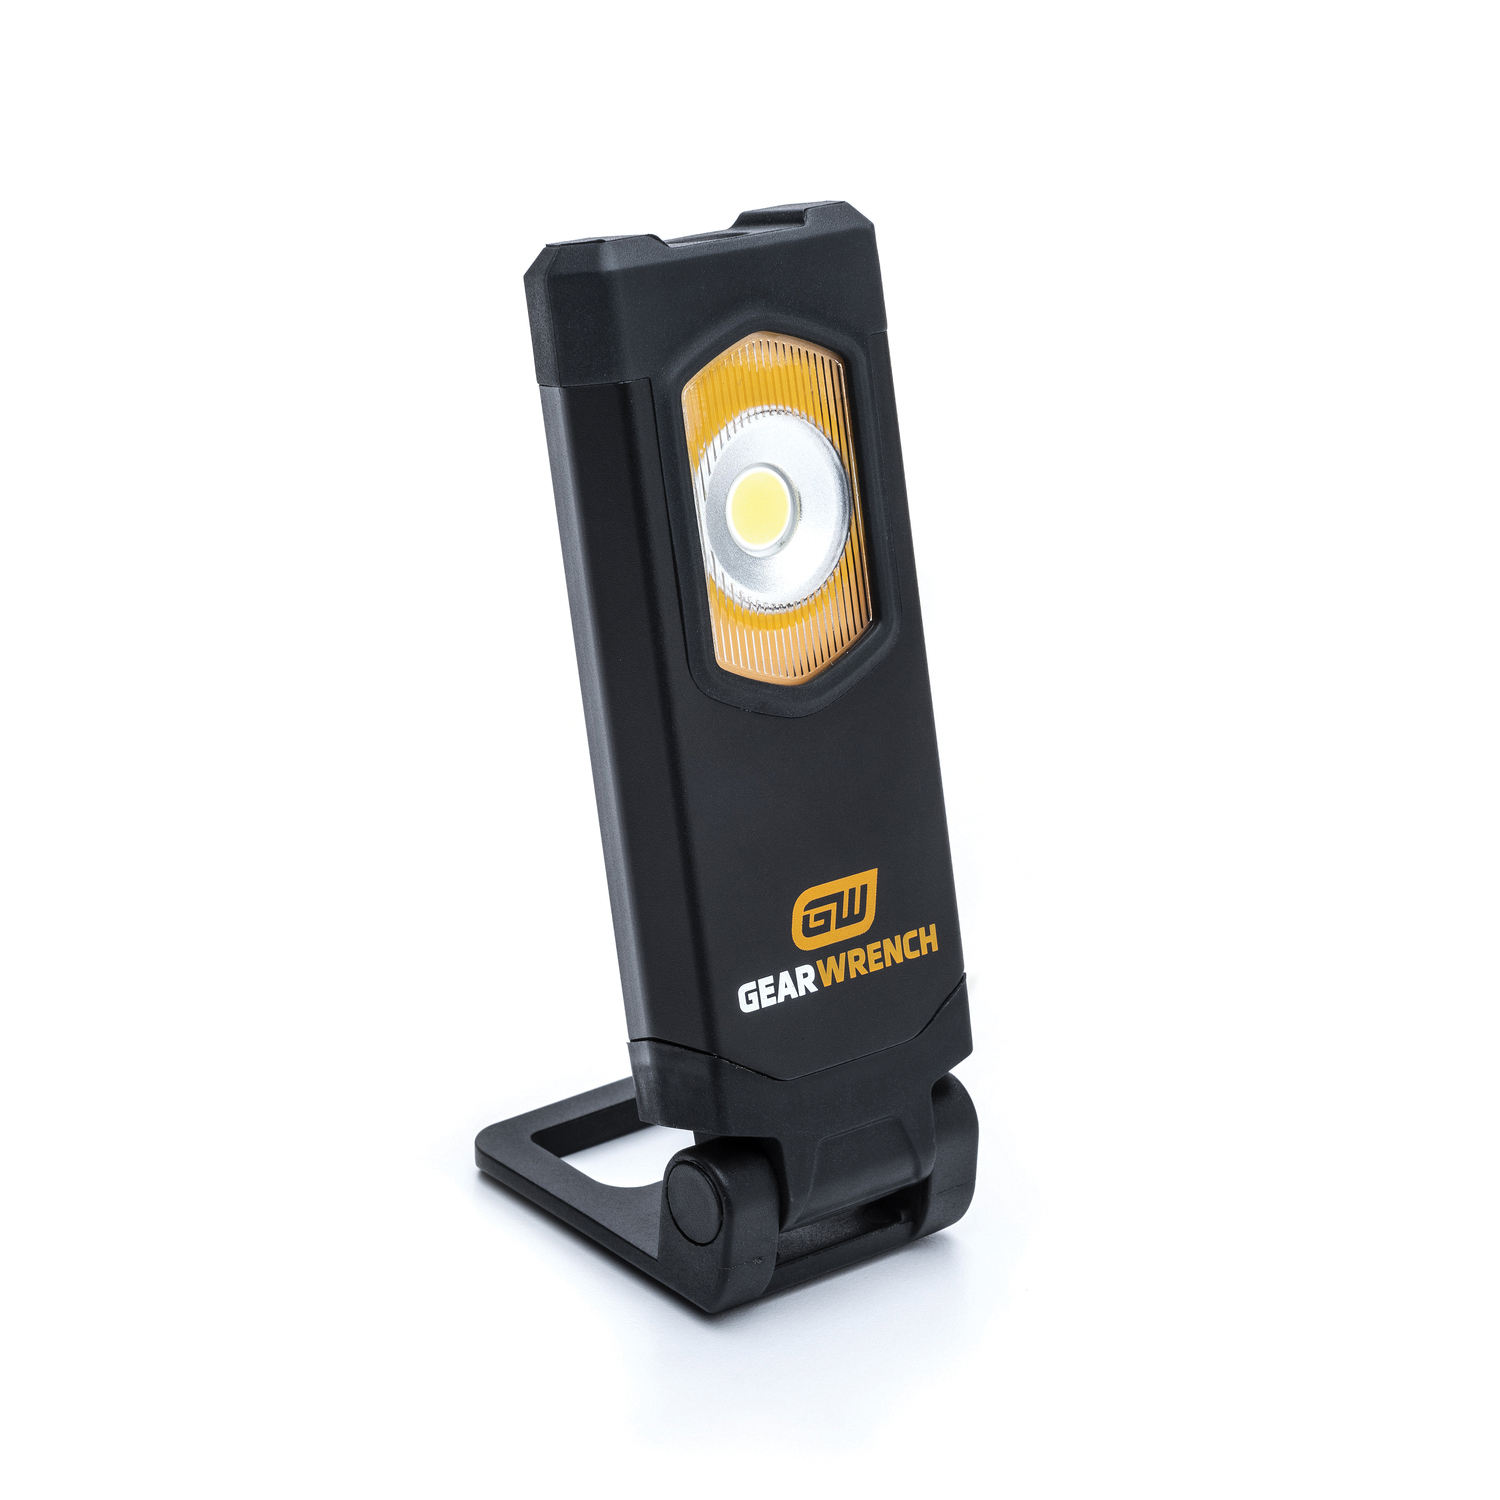 GEARWRENCH® 83352 Compact Rechargeable Work Light, Dual LED Lamp